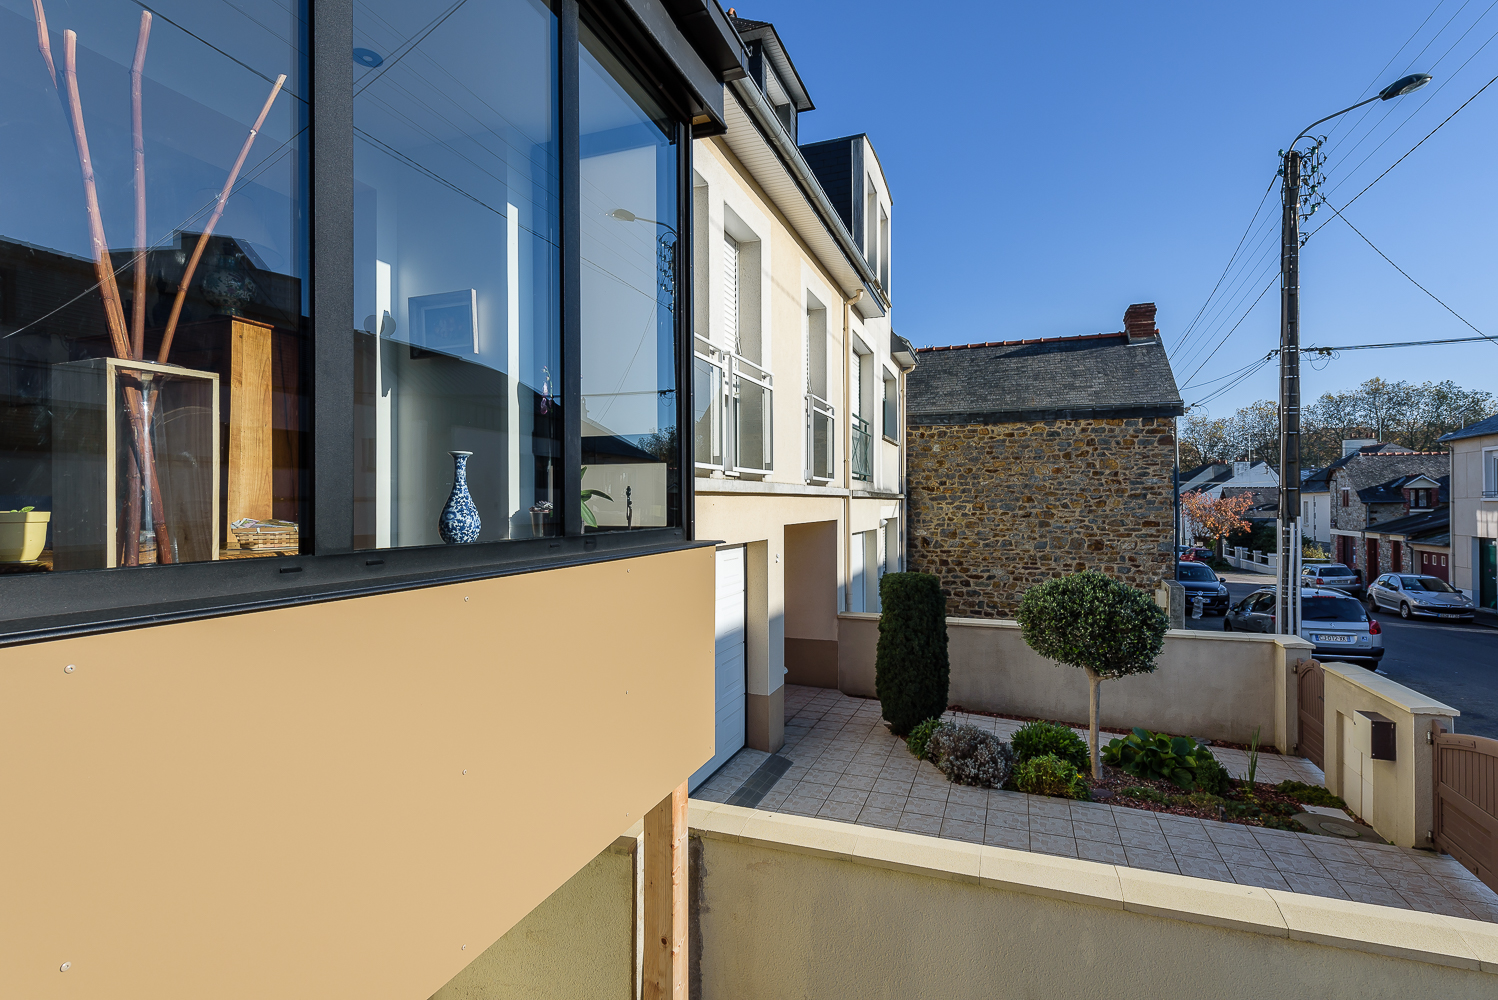 Protégé : Download : Rocher Typhaine architecte maison individuelle, bow-window, Rennes(35)